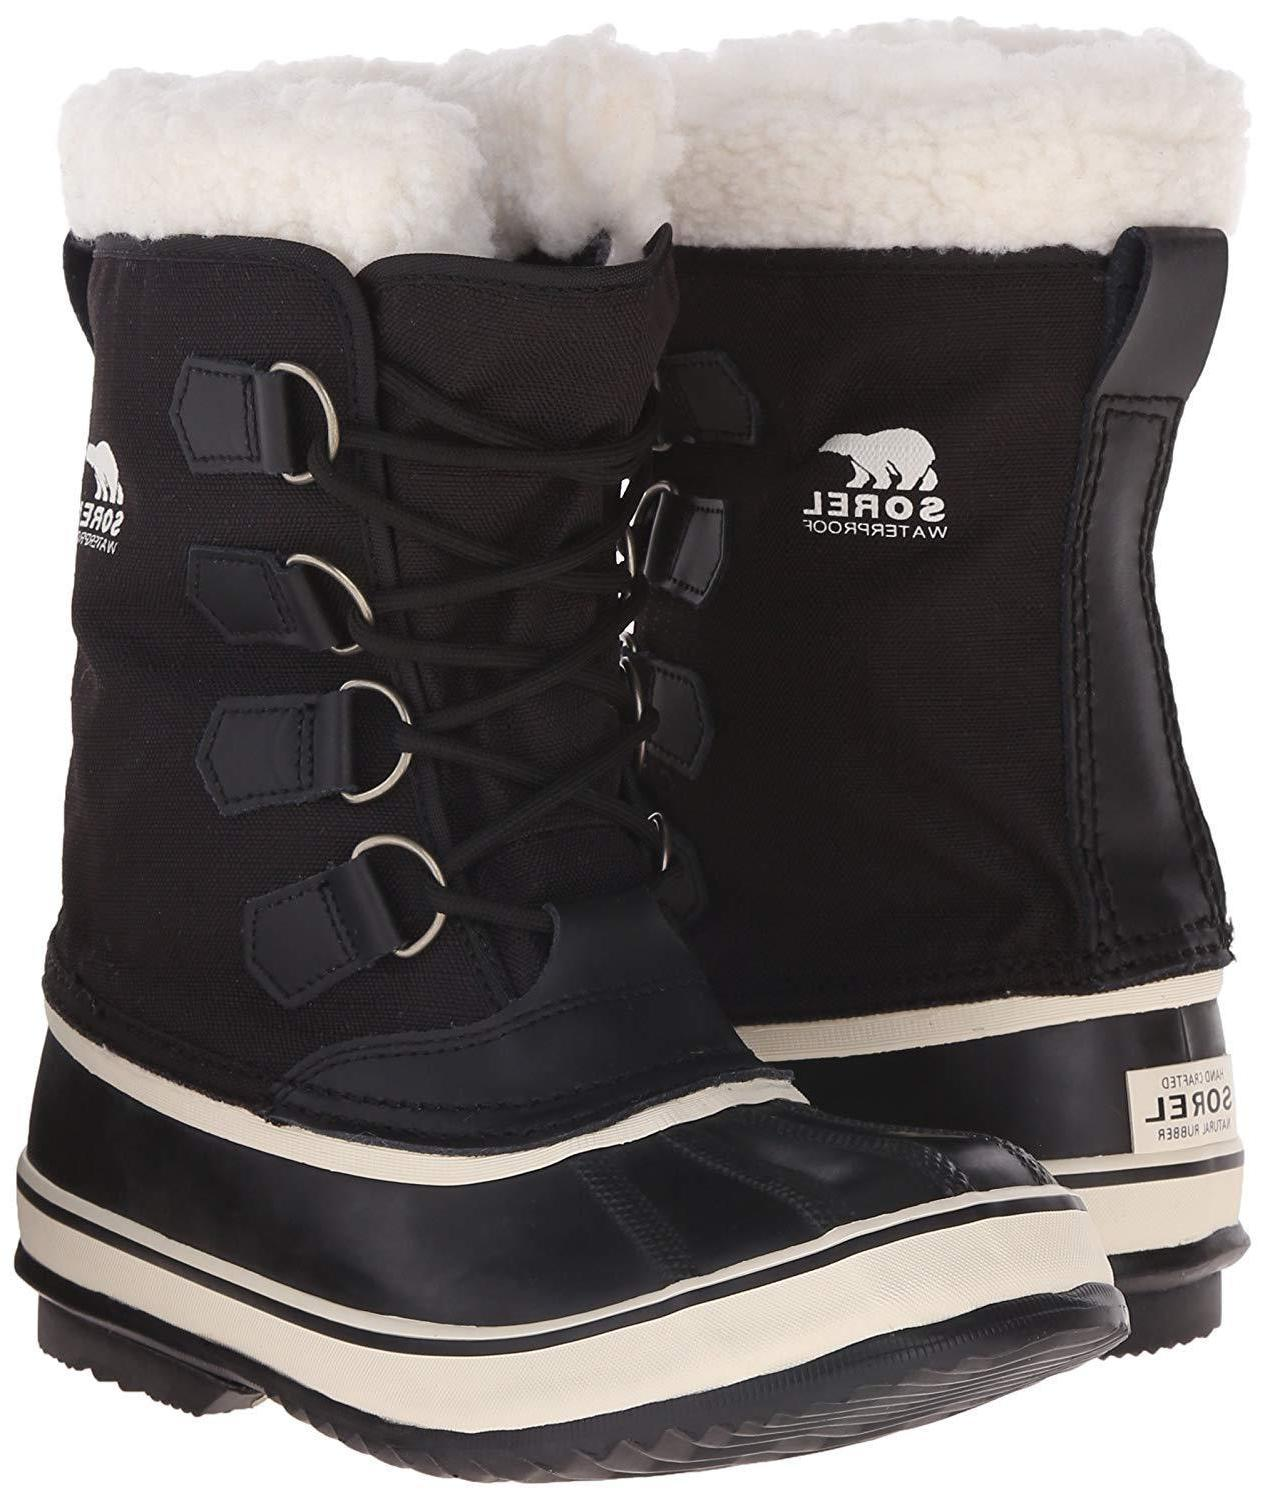 Sorel Women's Snow Boot